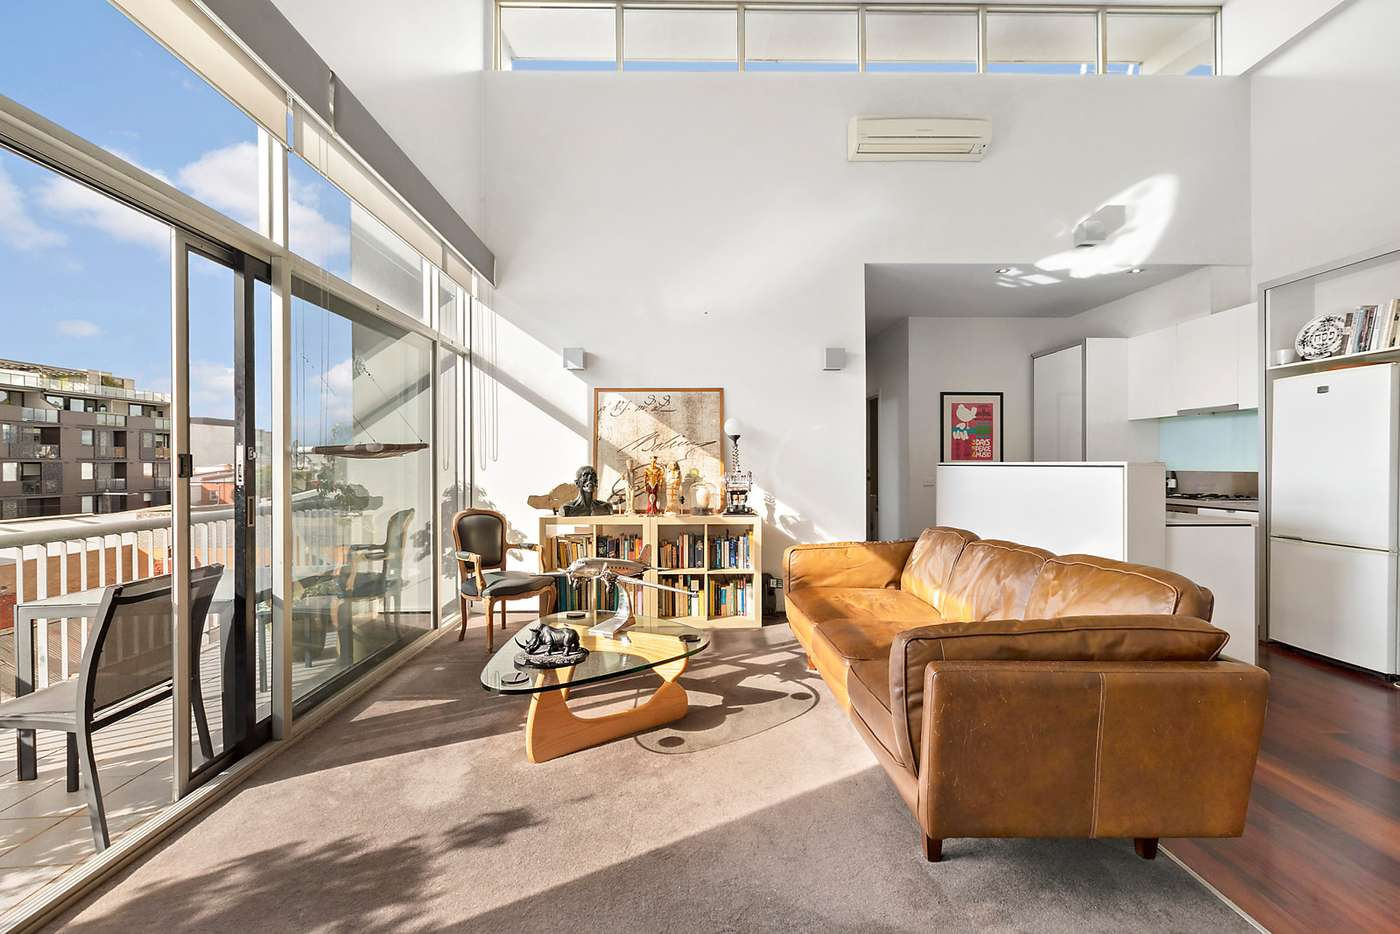 Main view of Homely apartment listing, 22/11 Mount Street, Prahran VIC 3181